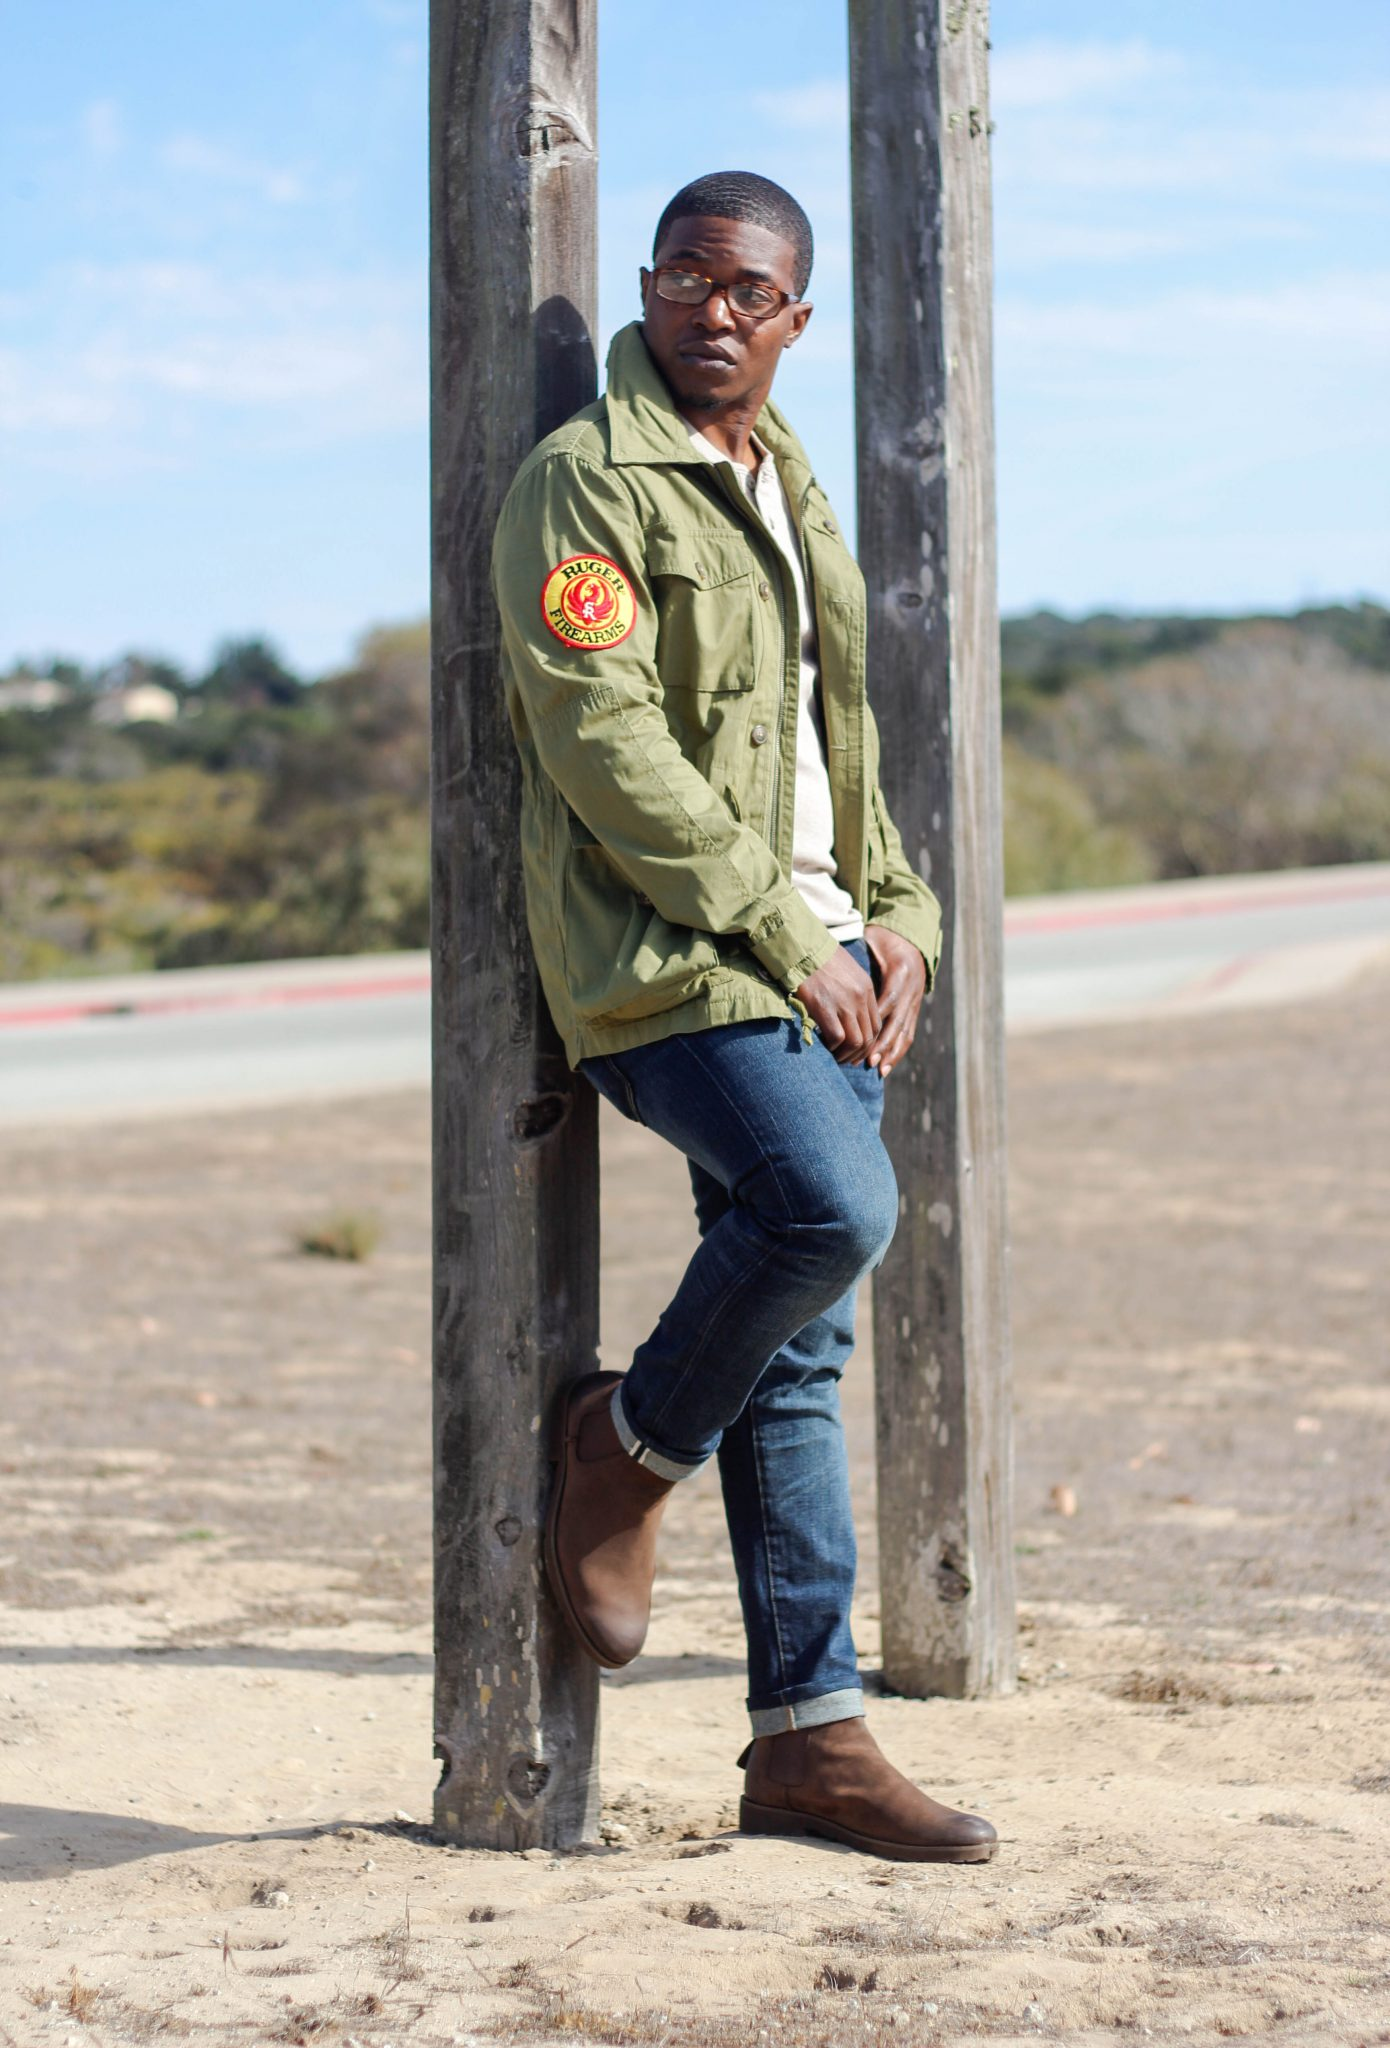 Military Inspired: The M-65 Field Jacket